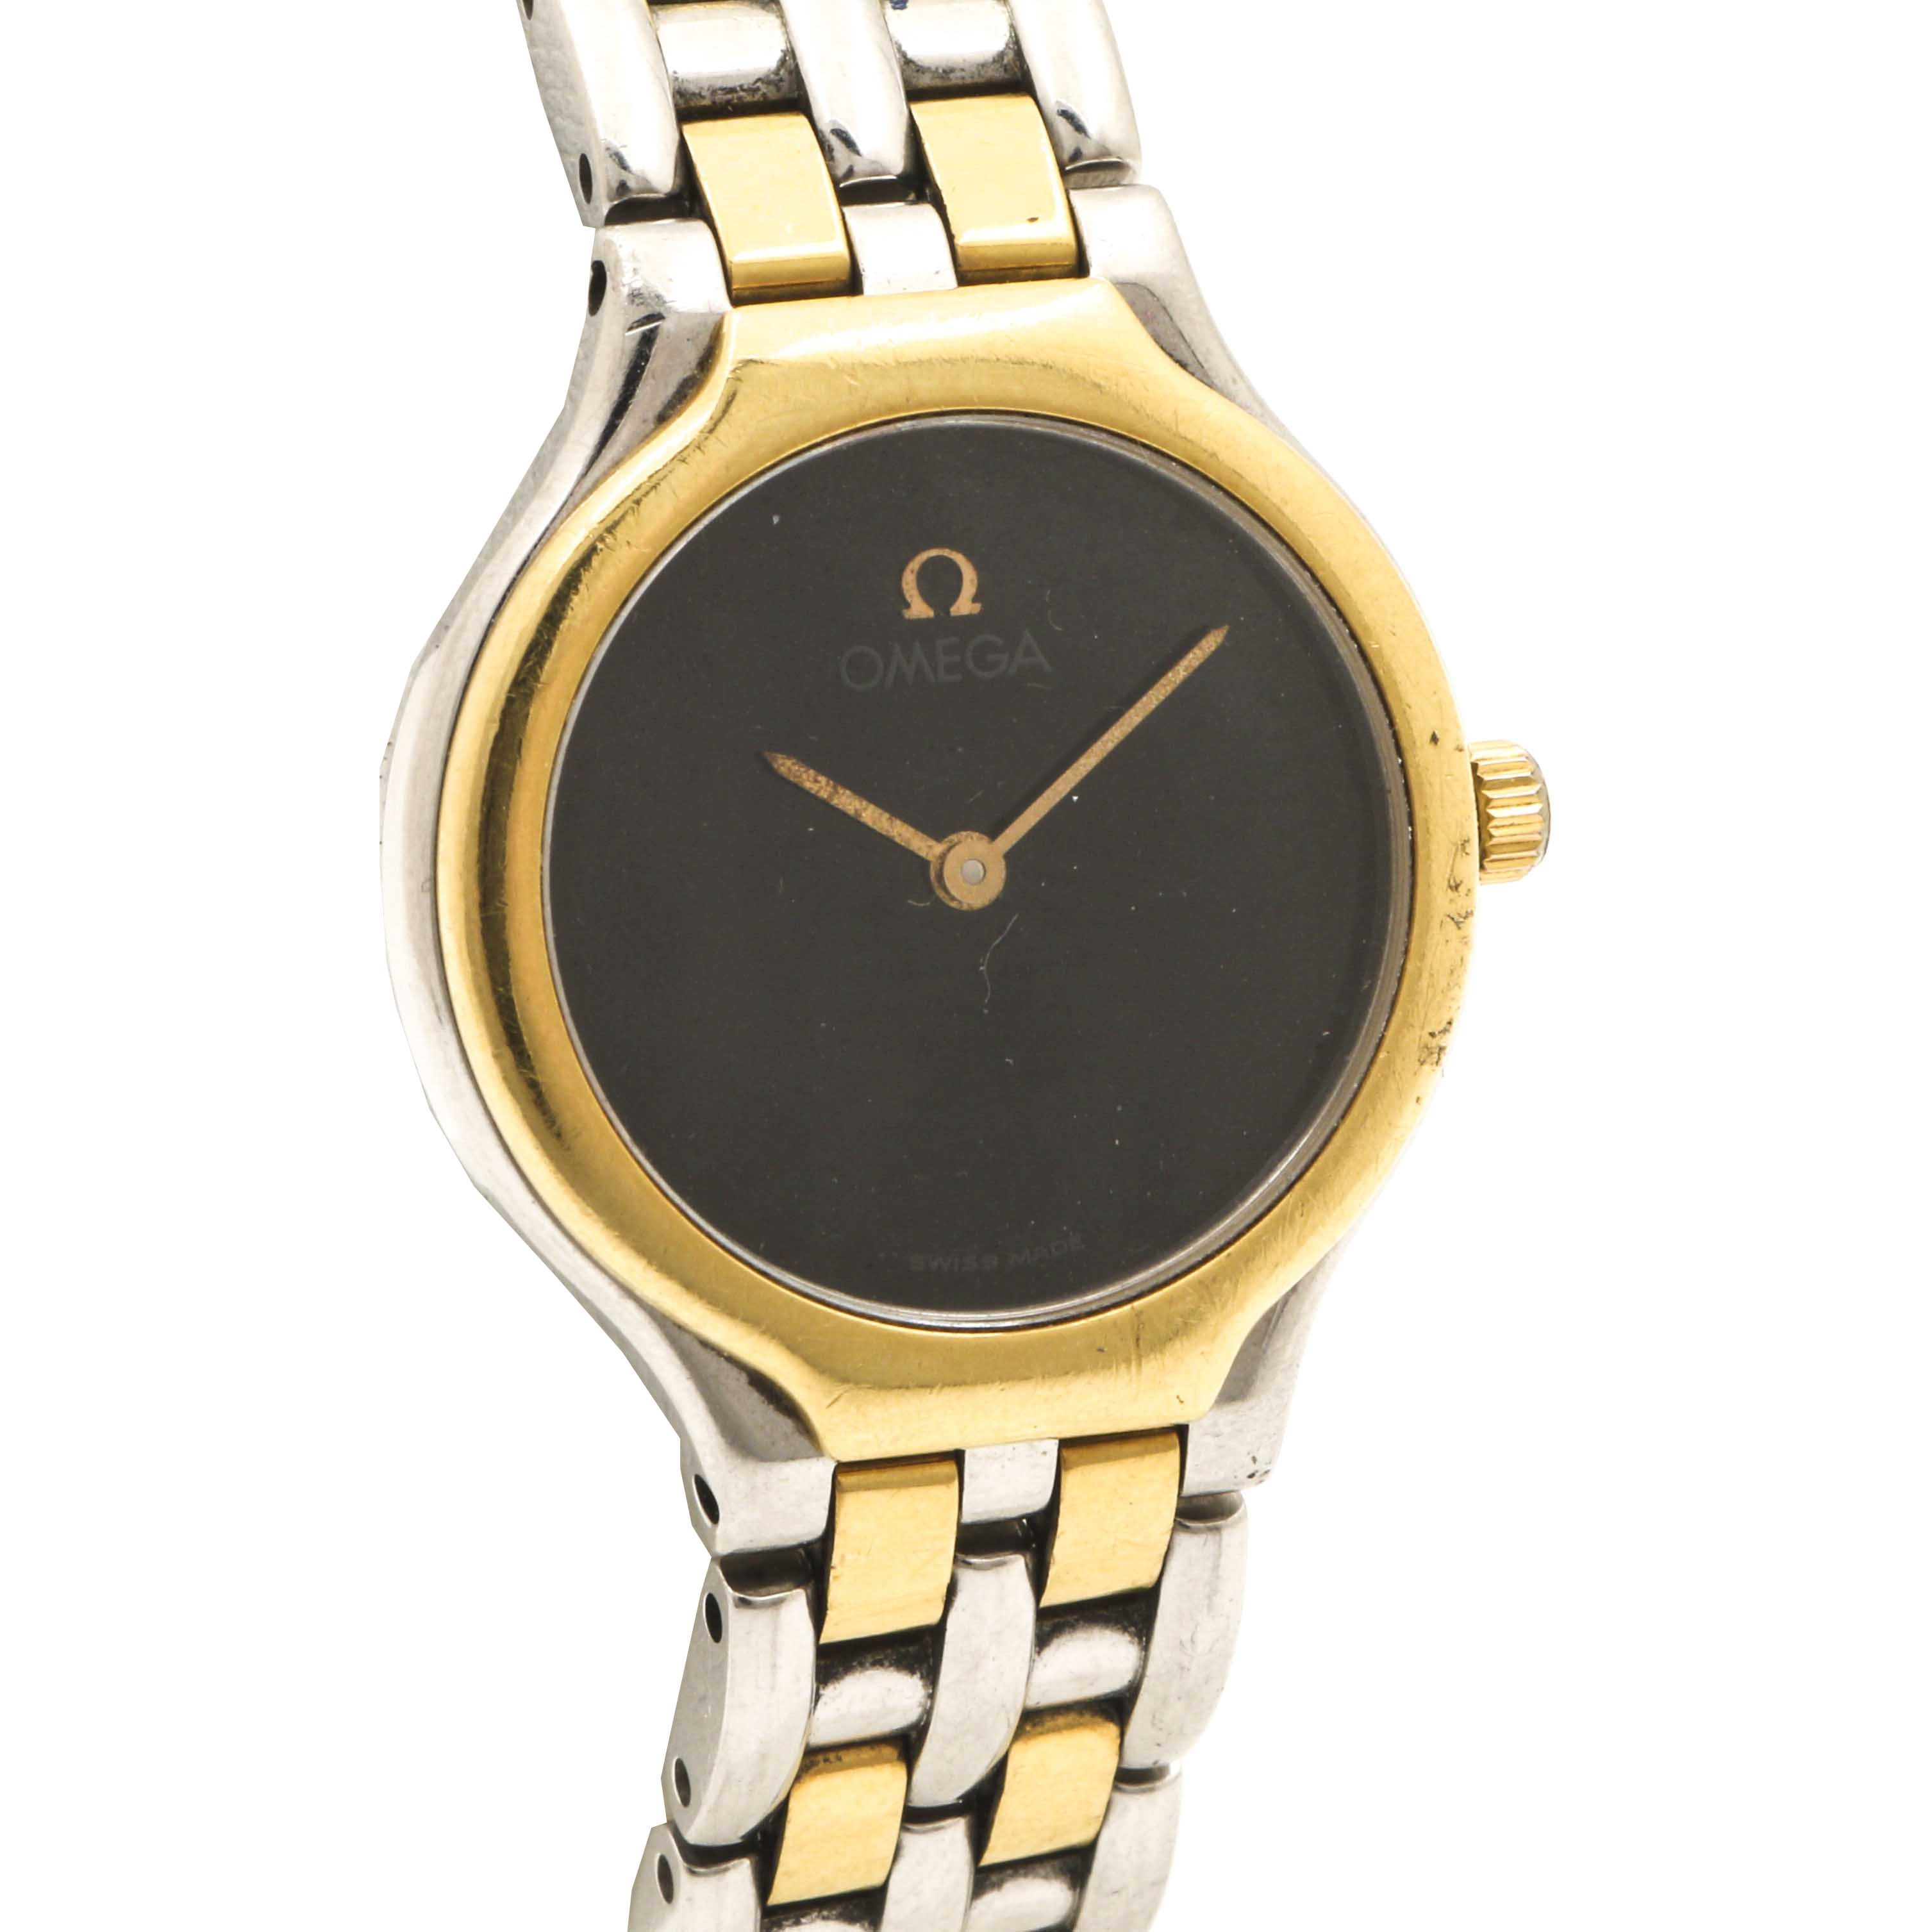 Omega Swiss Made Stainless Steel Wristwatch